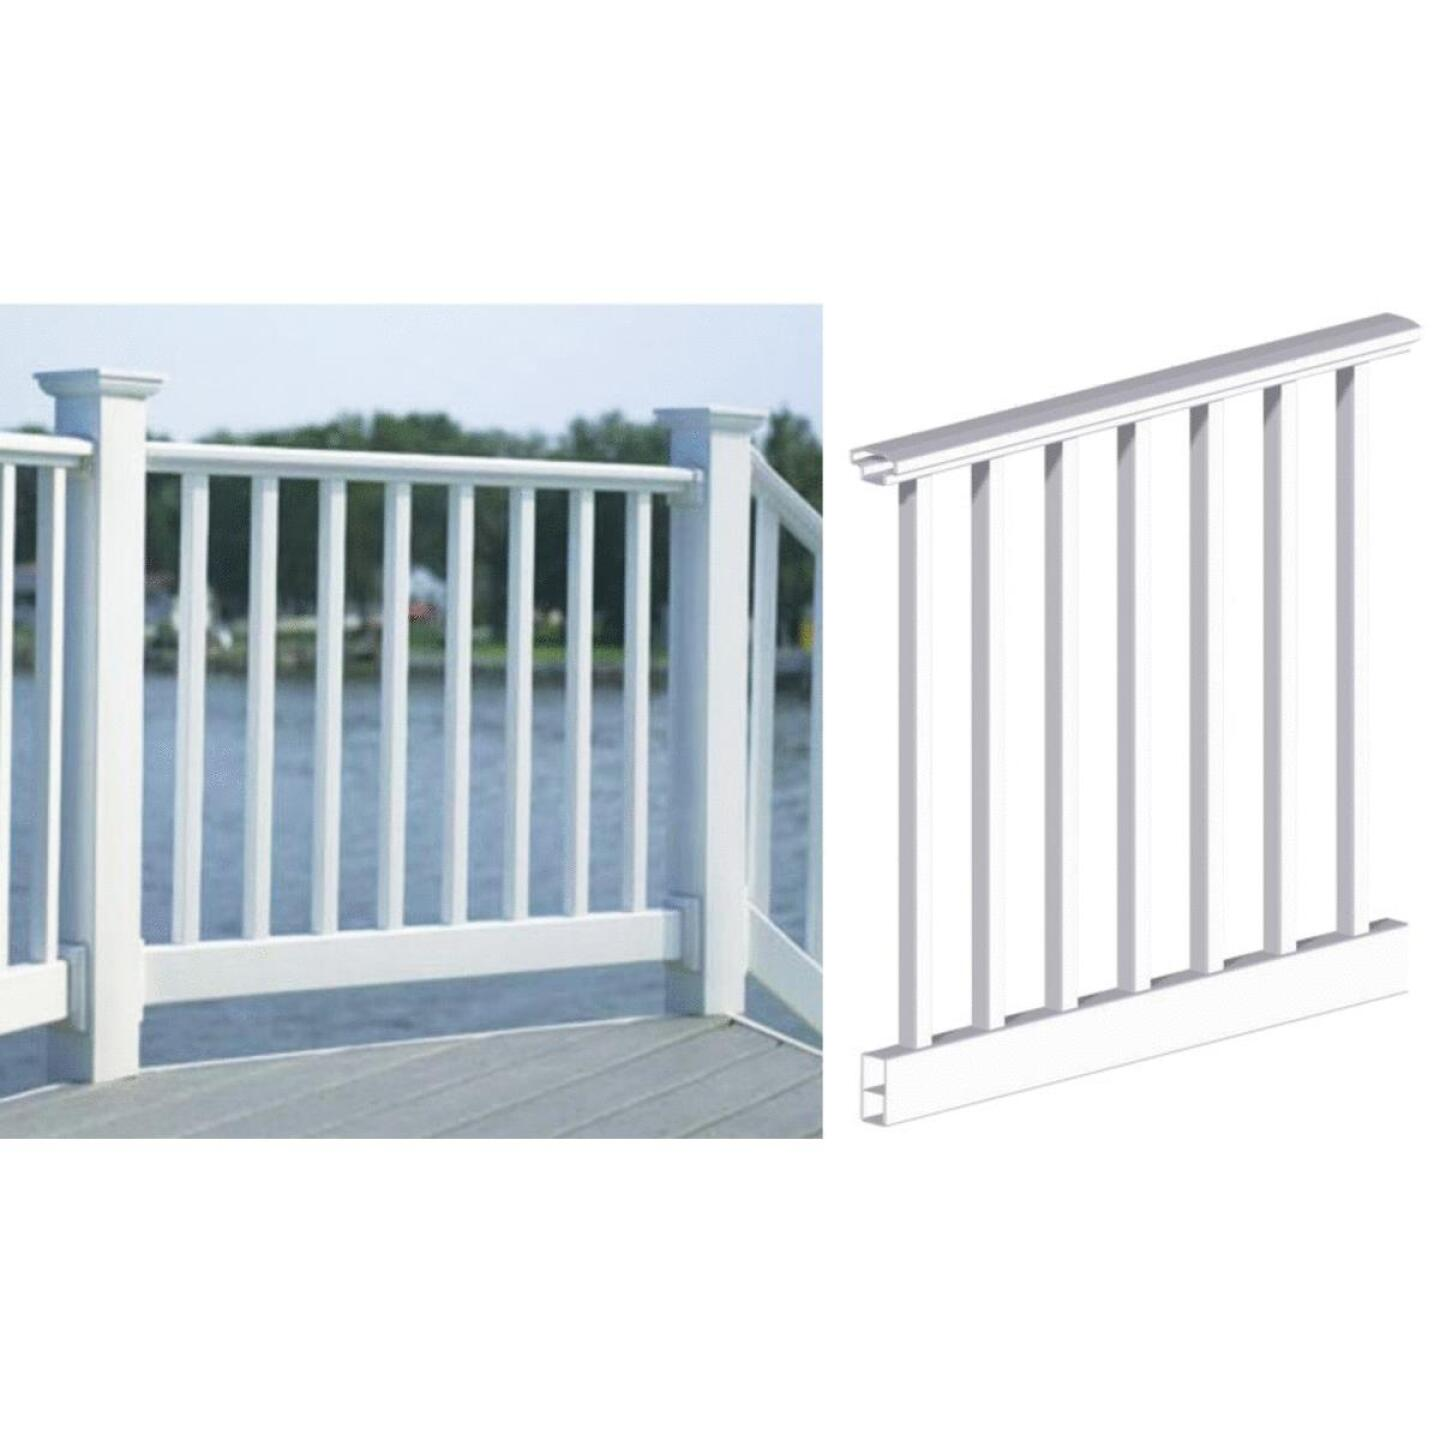 RDI 36 In. H. x 6 Ft. L. Vinyl Original Railing Image 1